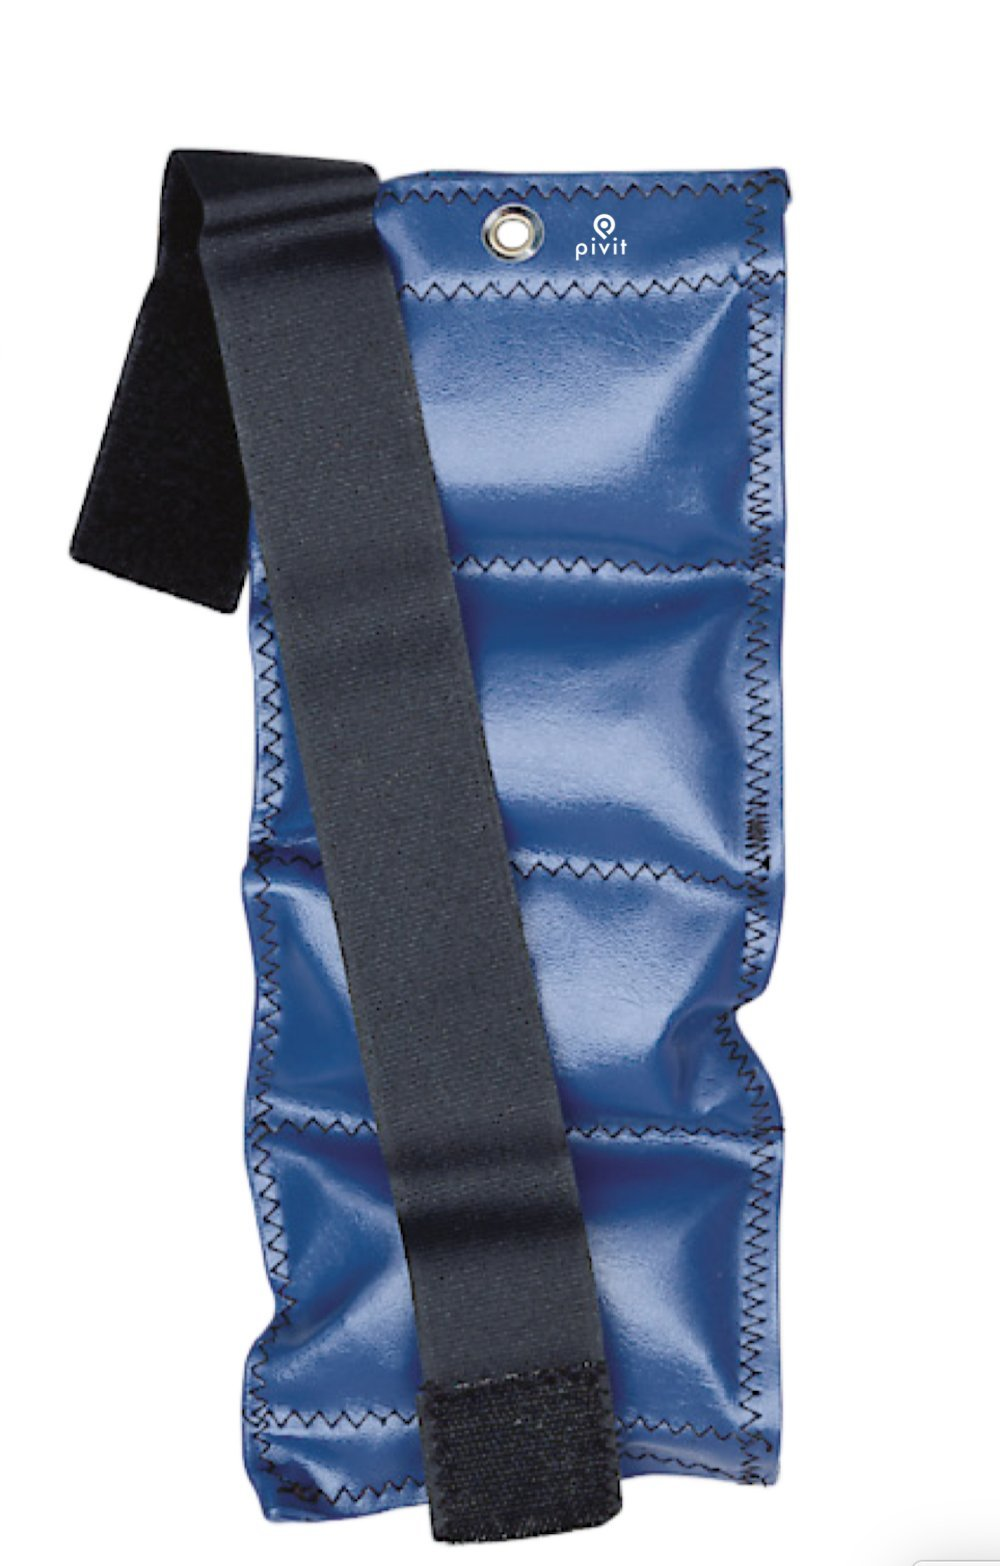 Pivit Exercise Weight Cuffs | 4 lb (1.81 kg) Blue | Stays Put Even During Strenuous Exercise | Flexible Weight Contours to Ankles, Wrists and Thighs | Proven Effective in Hospitals for Over 30 Years